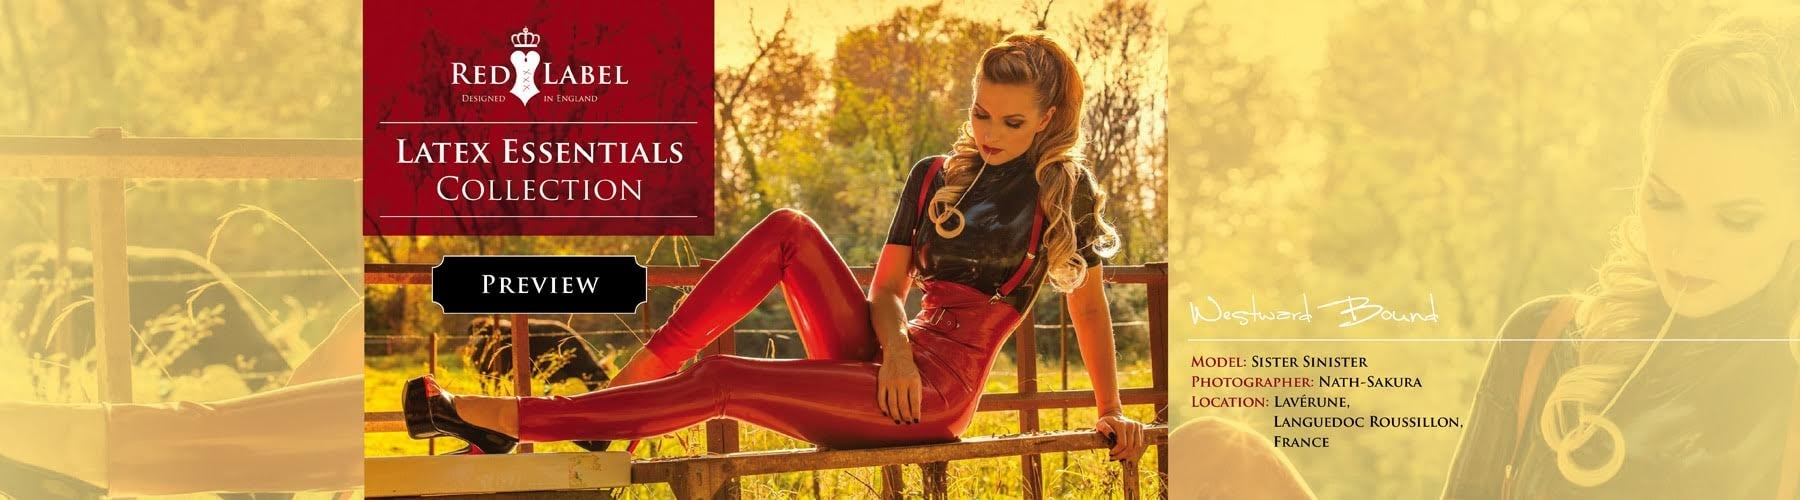 Red Label Essentials Latex Rubber Clothing Collection.